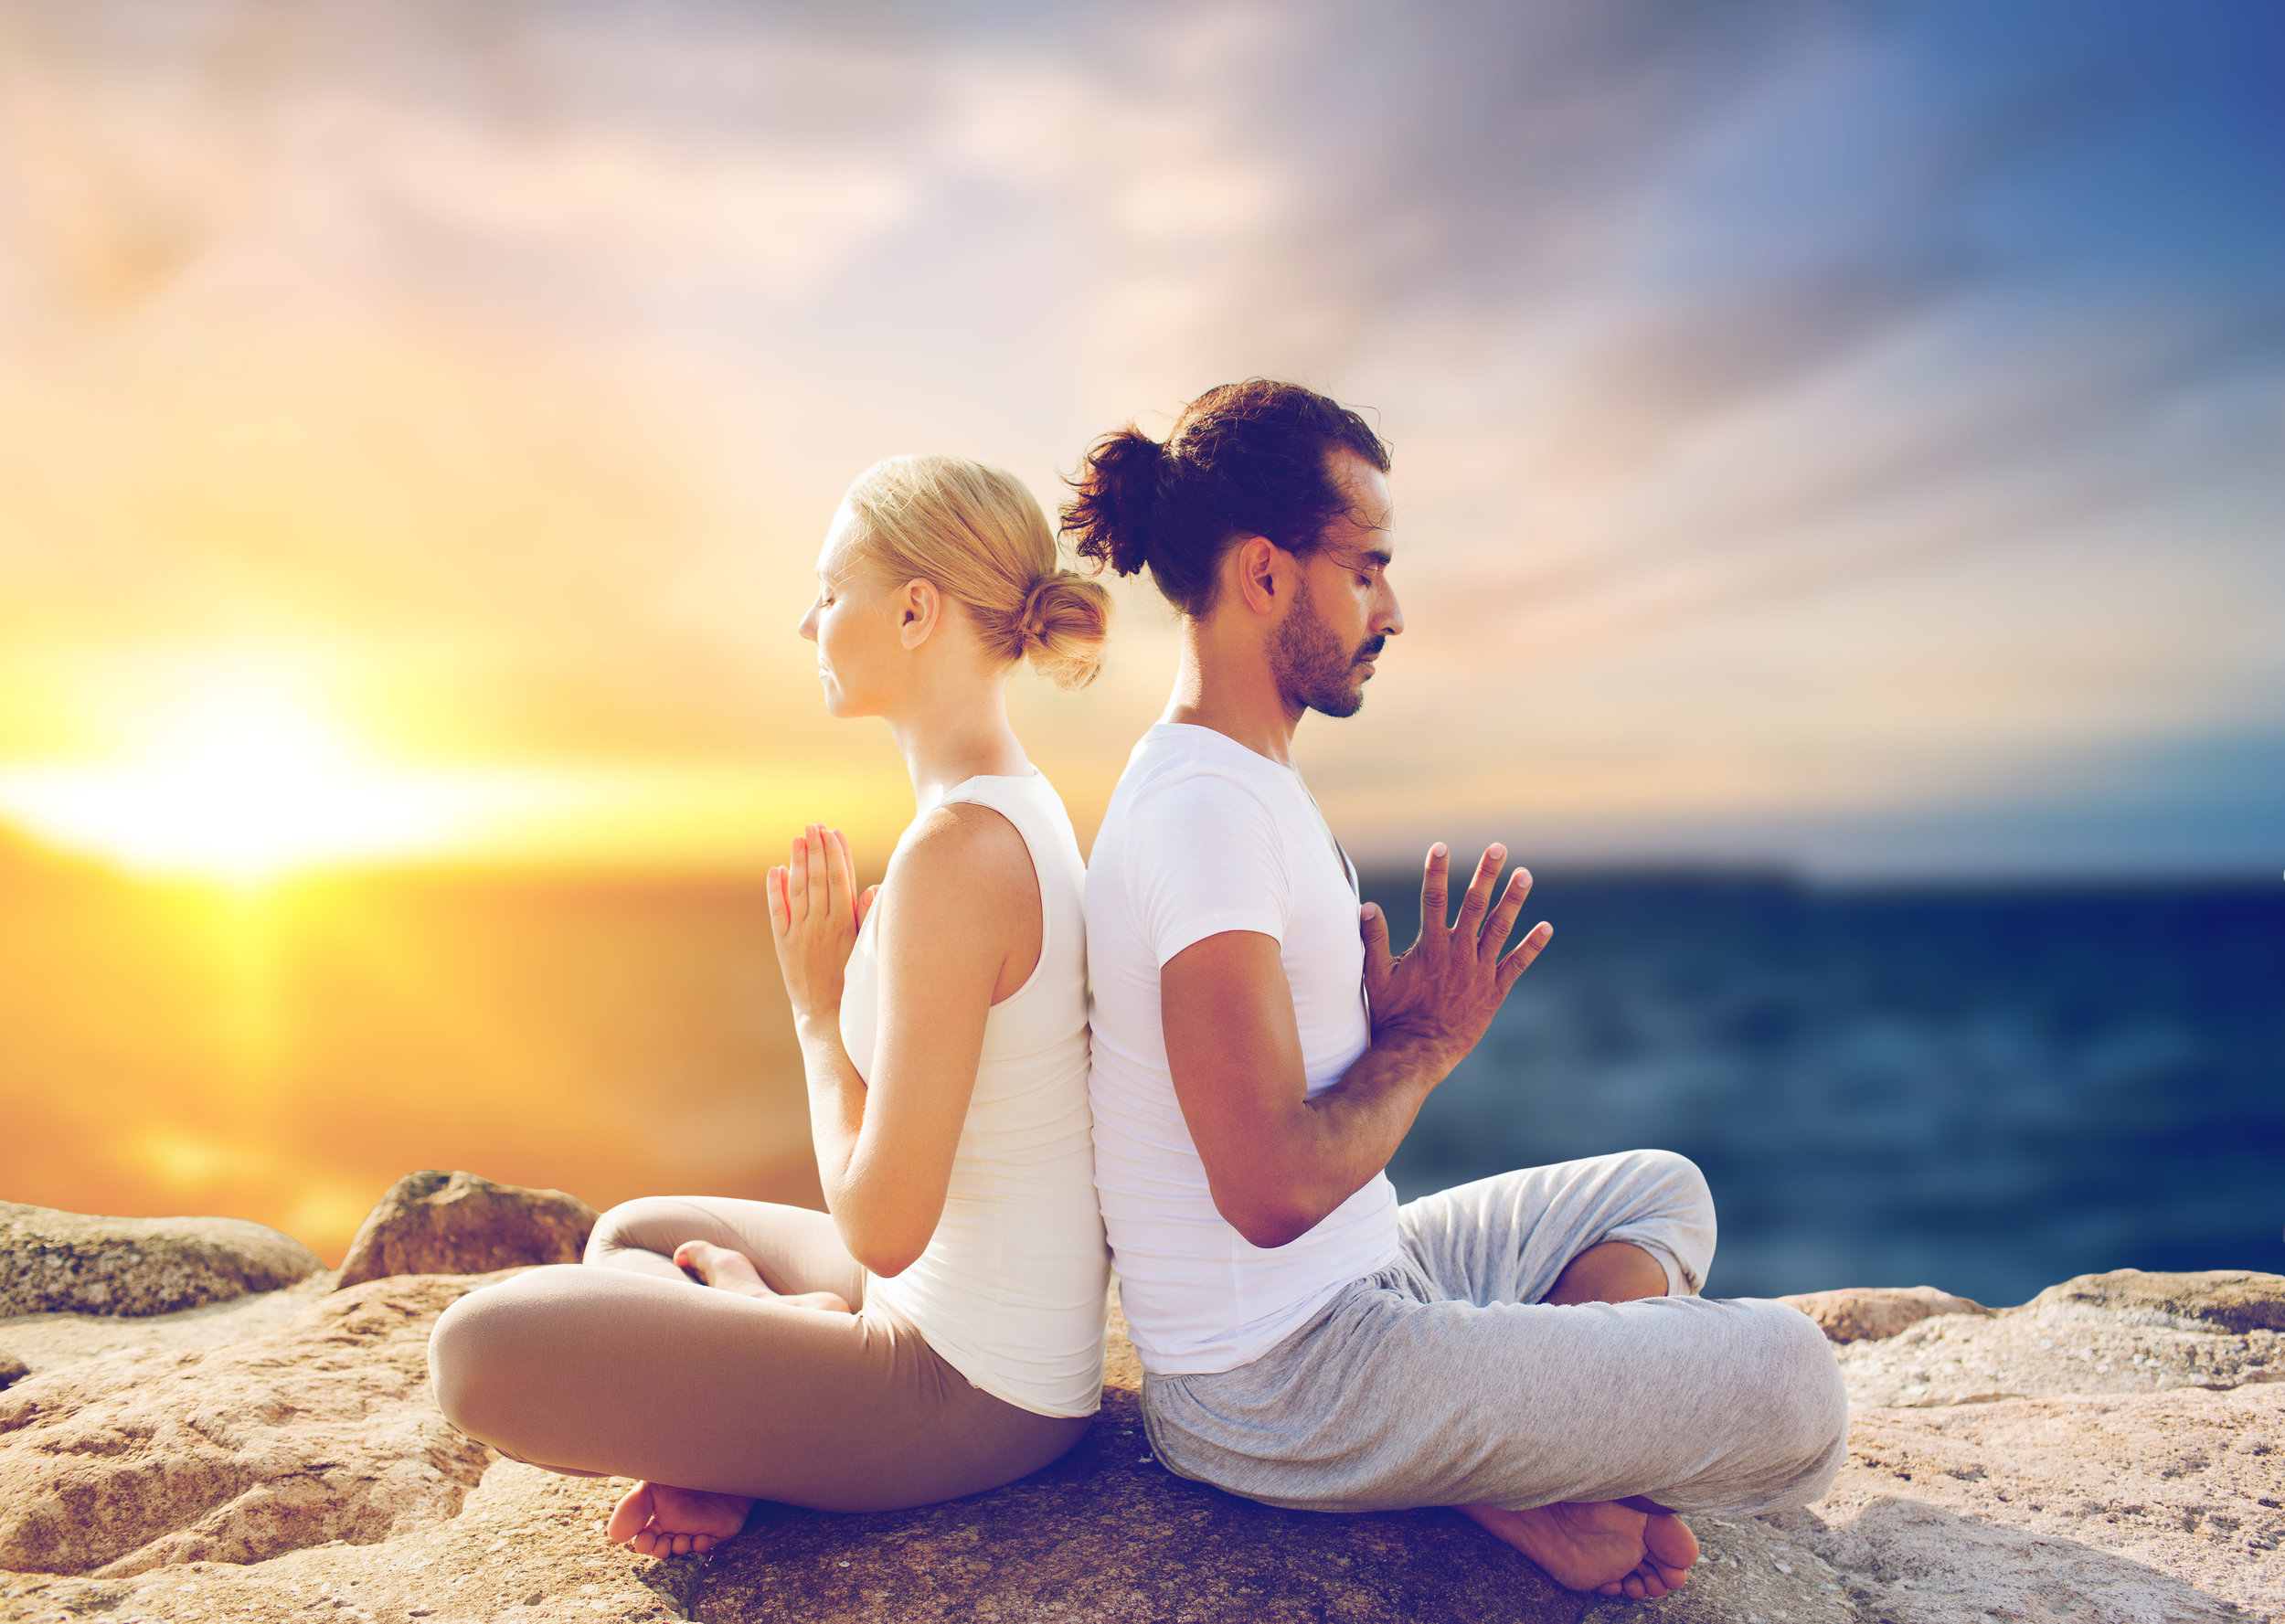 meditation AdobeStock_197528880.jpeg